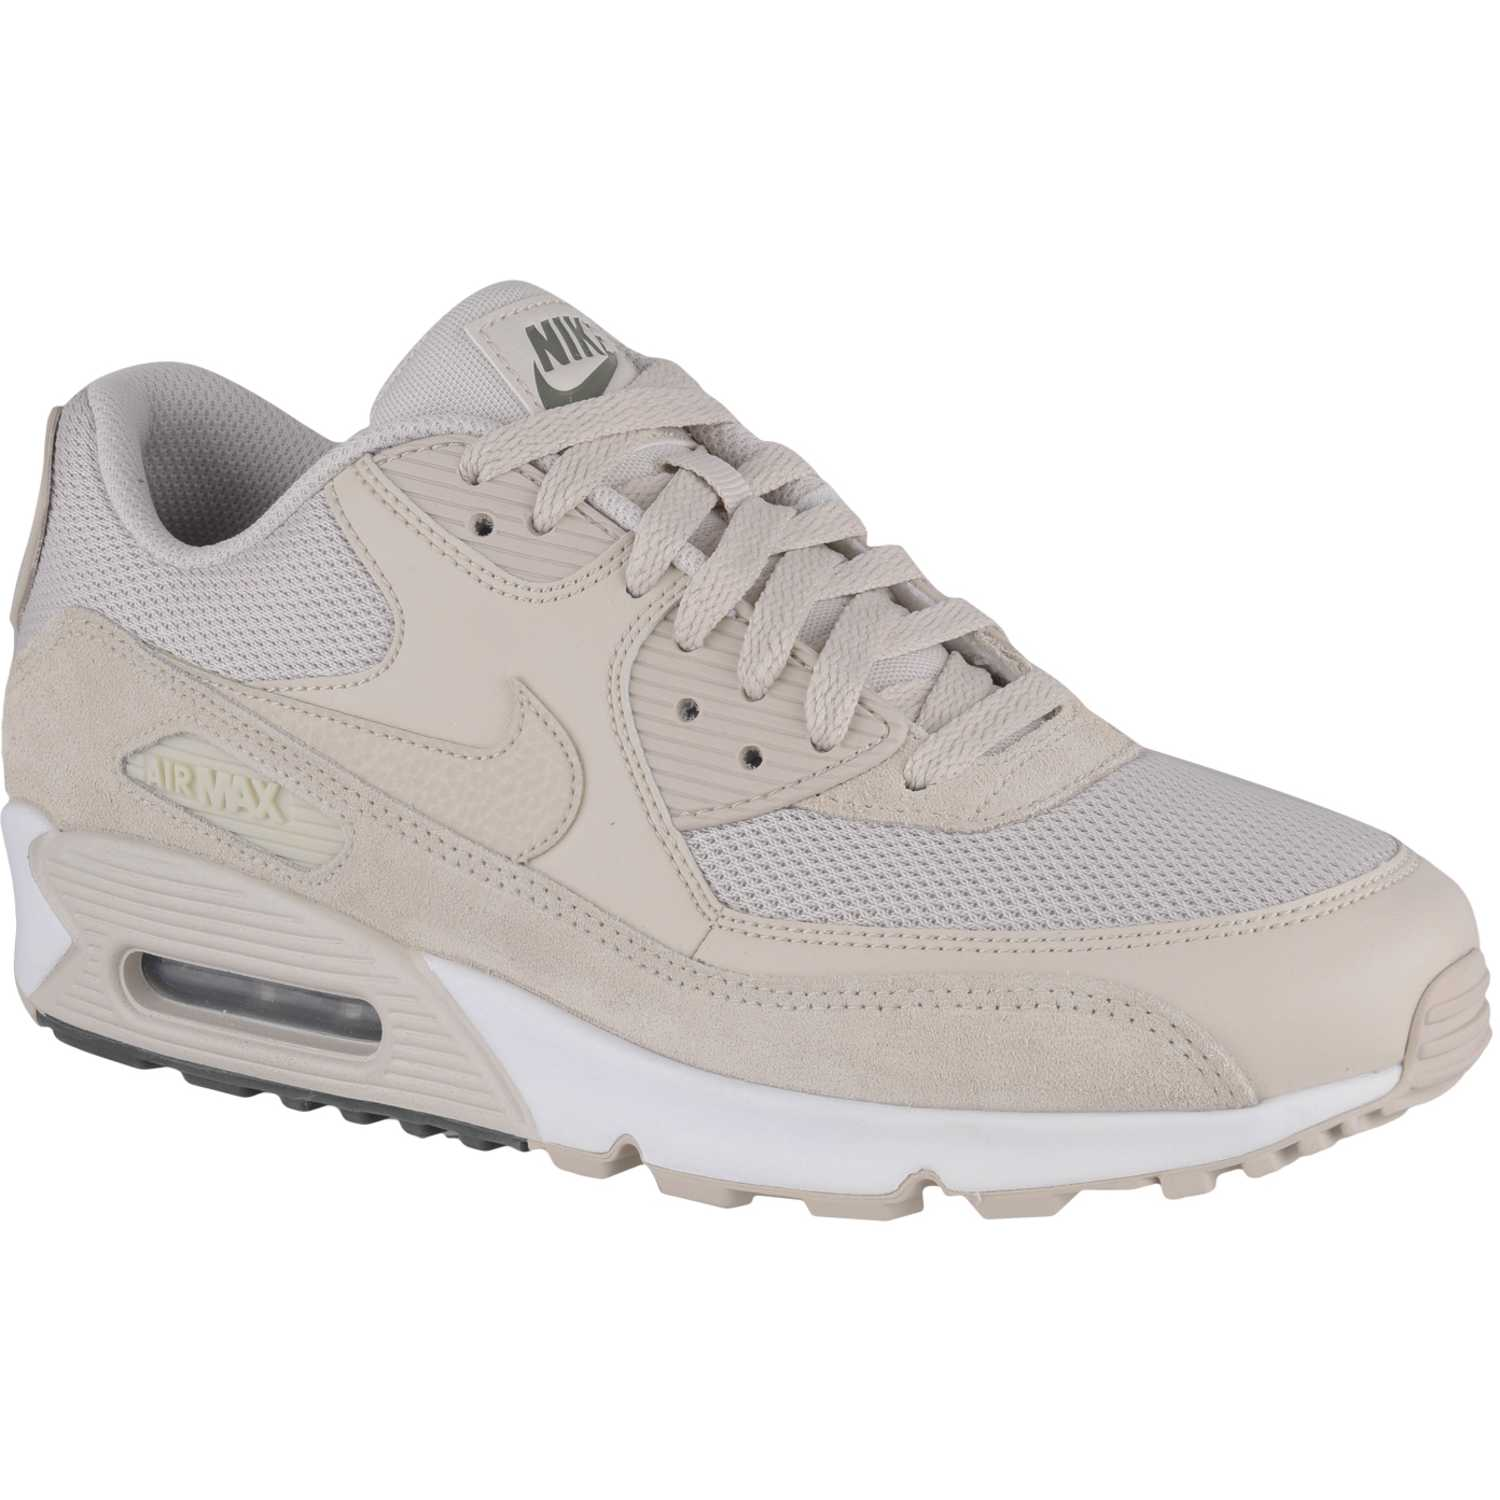 huge discount b50a8 74f6b Zapatilla de Hombre Nike Beige  Blanco air max 90 essential